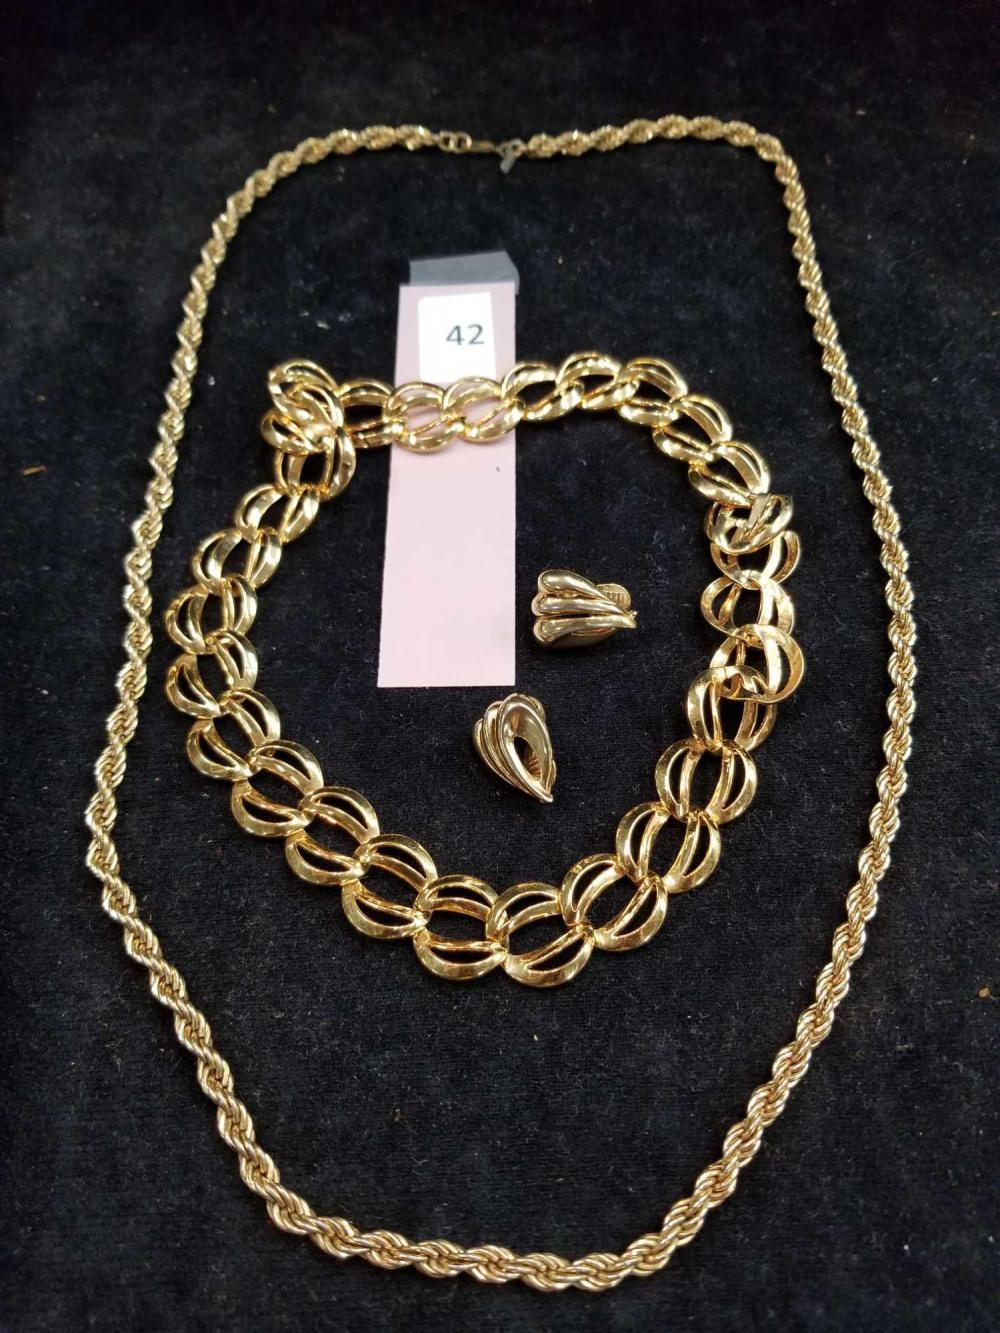 COSTUME NECKLACE & NECKLACE W/ EARRING SET - 2 ITEMS